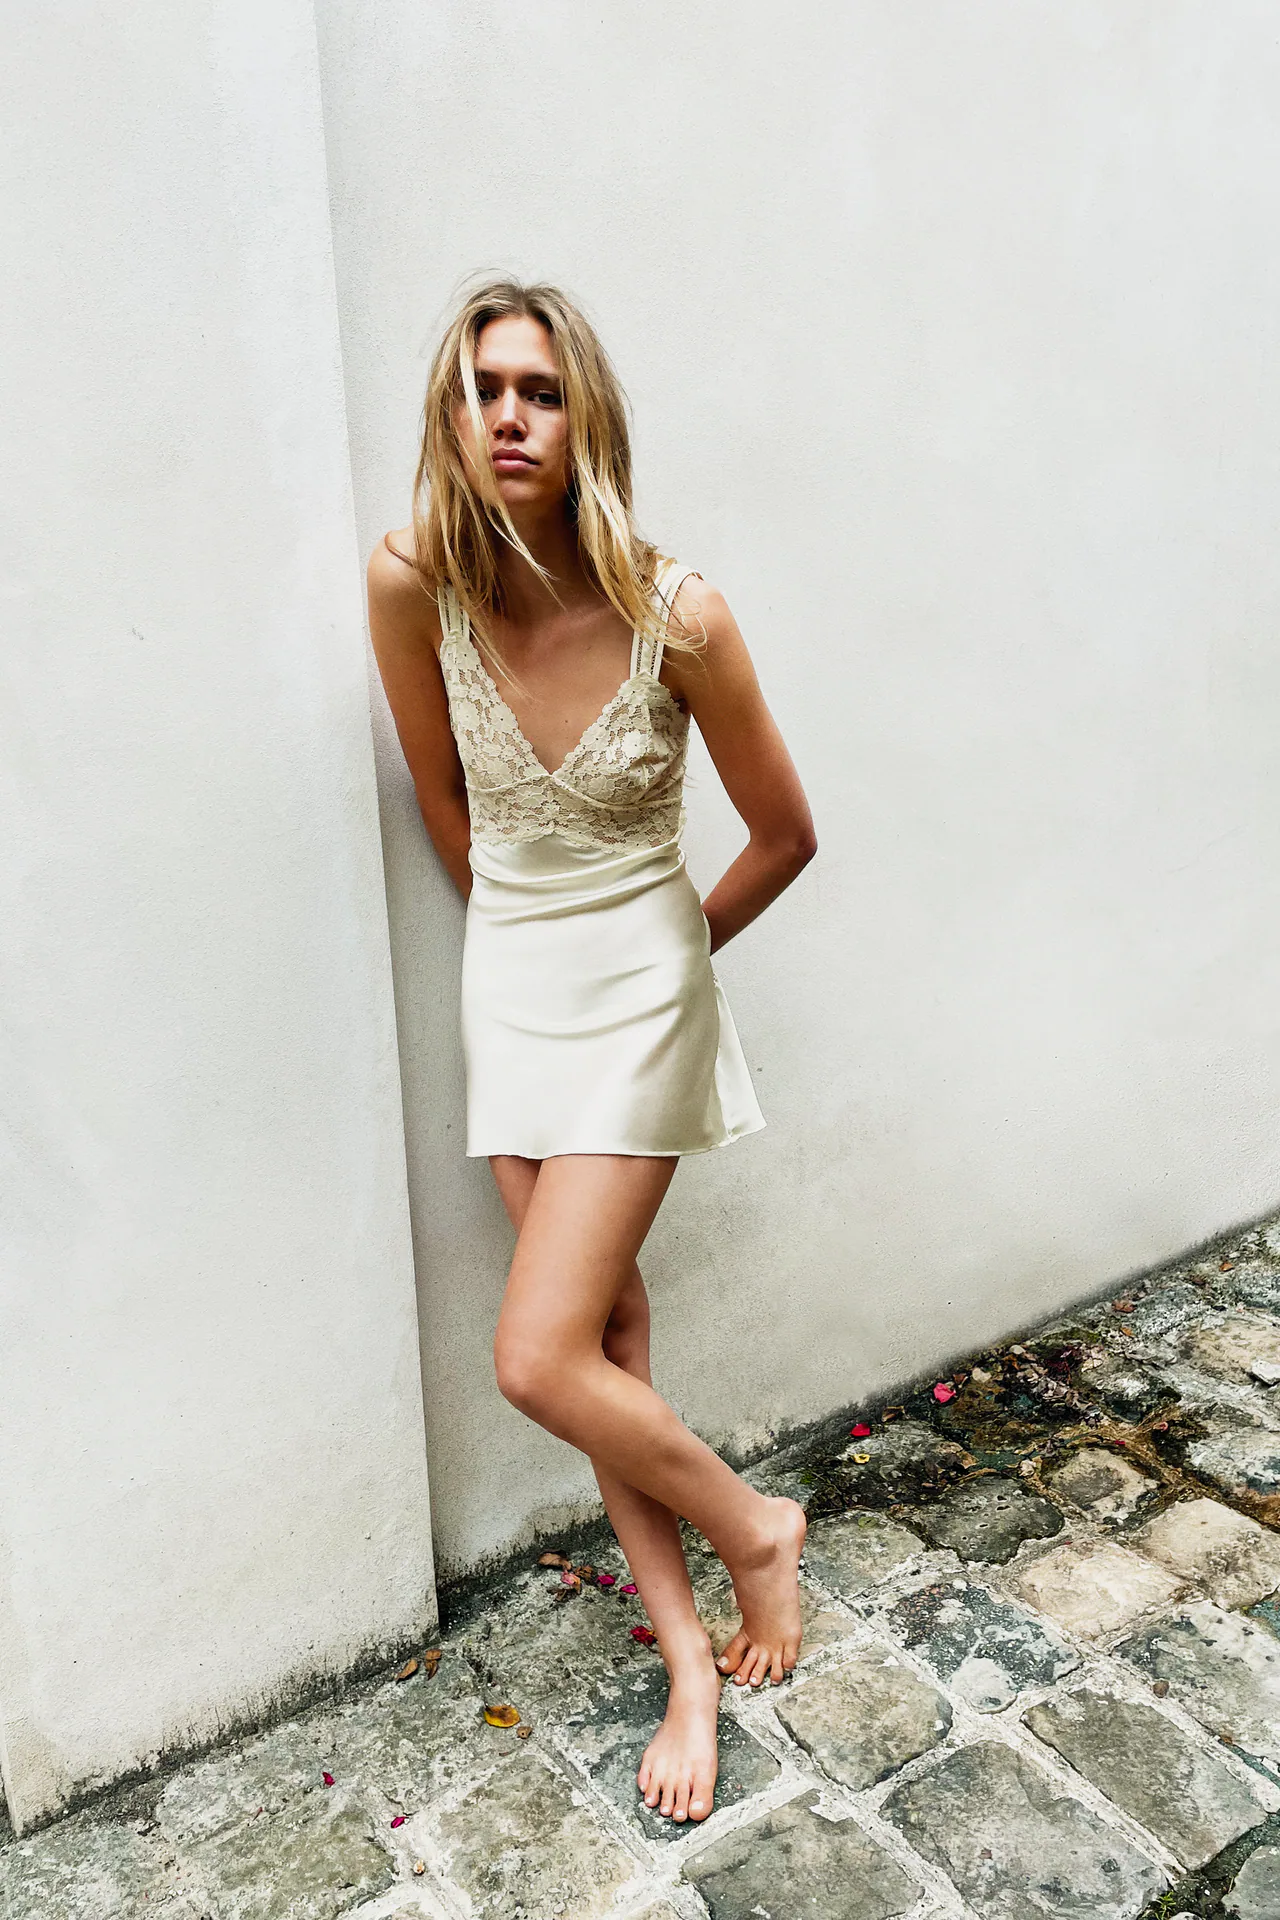 Zara's Bridal Lingerie Collection Is A Must For Brides & Non-Brides Alike